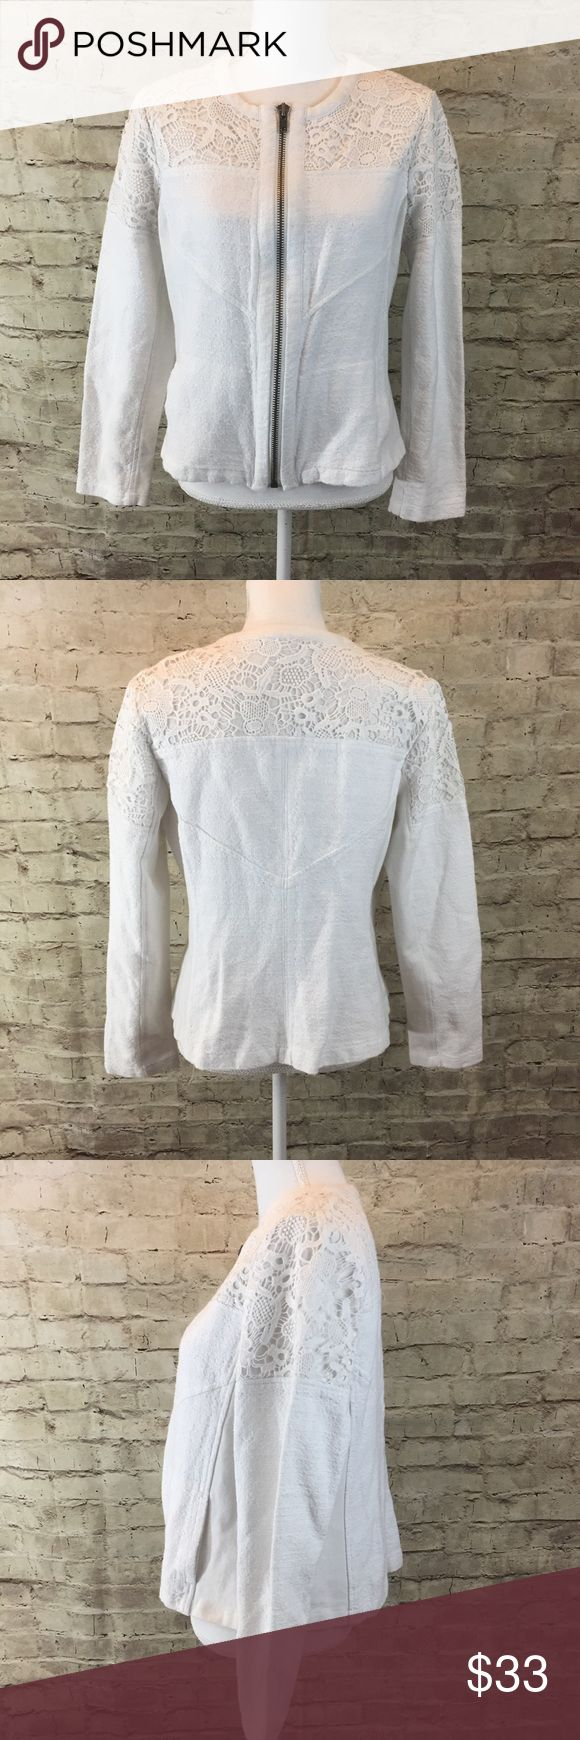 CAbi Lace Insert Jacket White zip up jacket with lace inserto on the top part and back. In good preowned condition CAbi Jackets & Coats